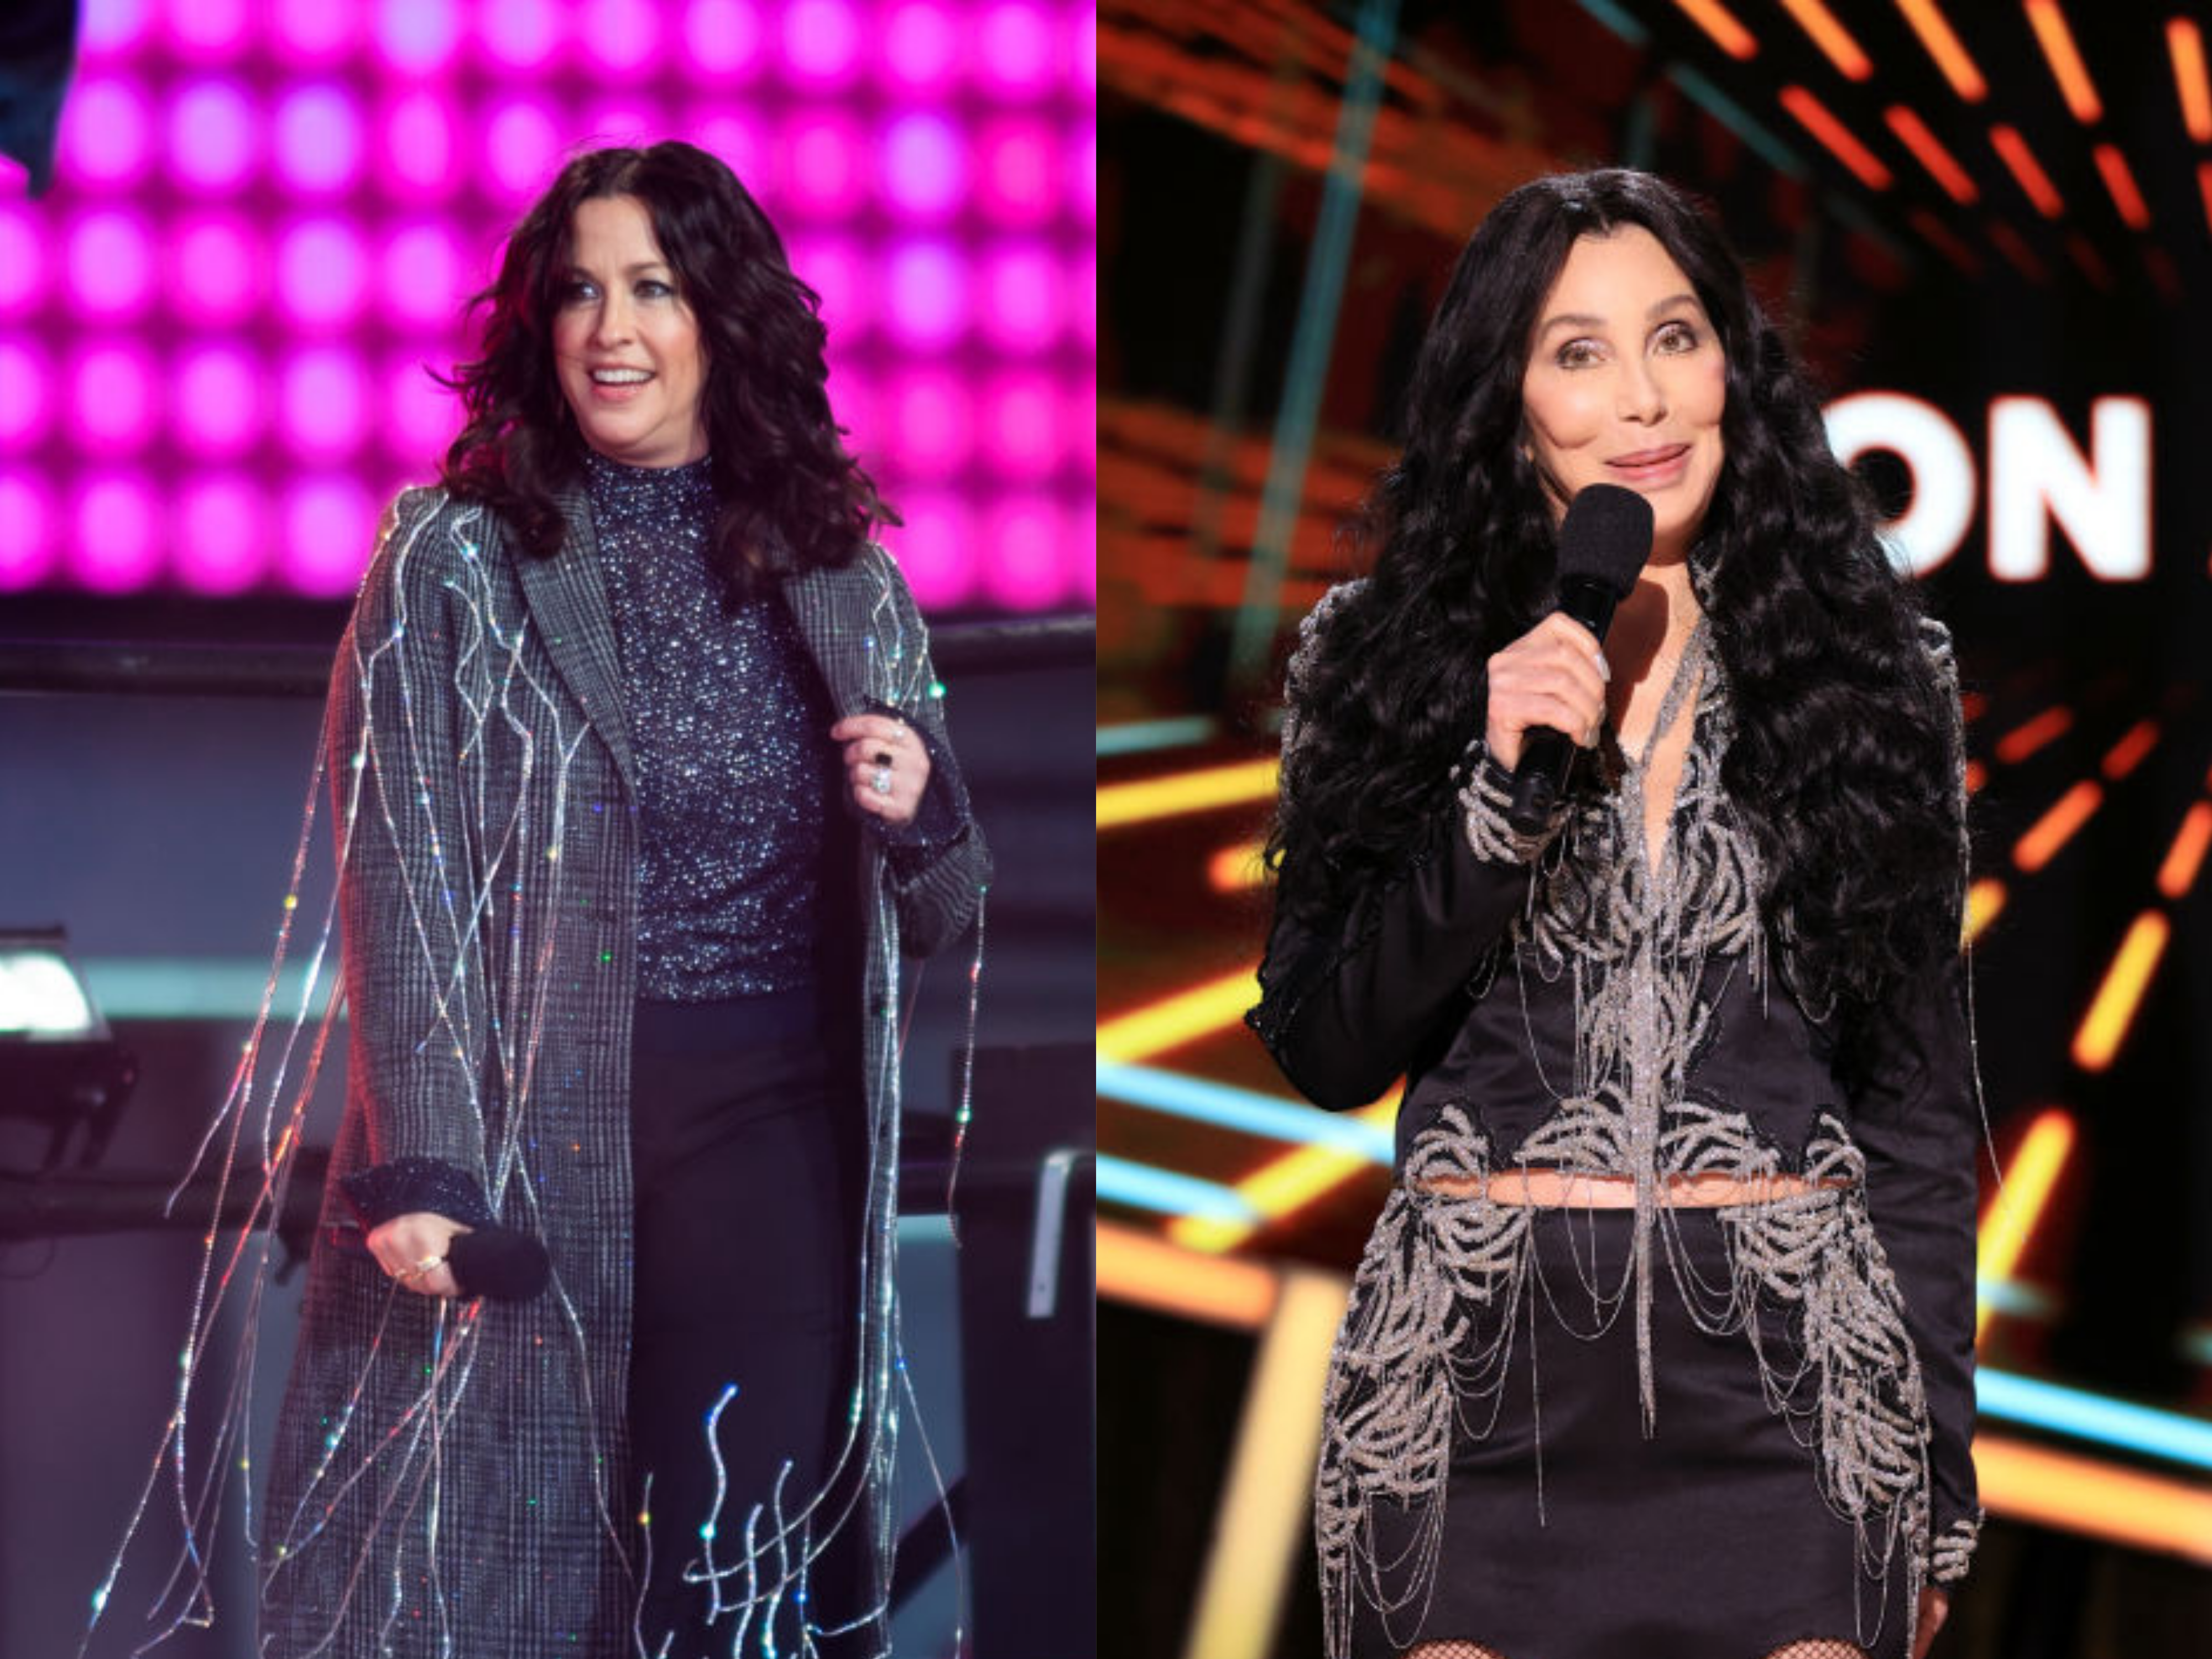 Alanis Morissette Joins In On Turning Cher's 'I'm Here' Tweet Into A Meme